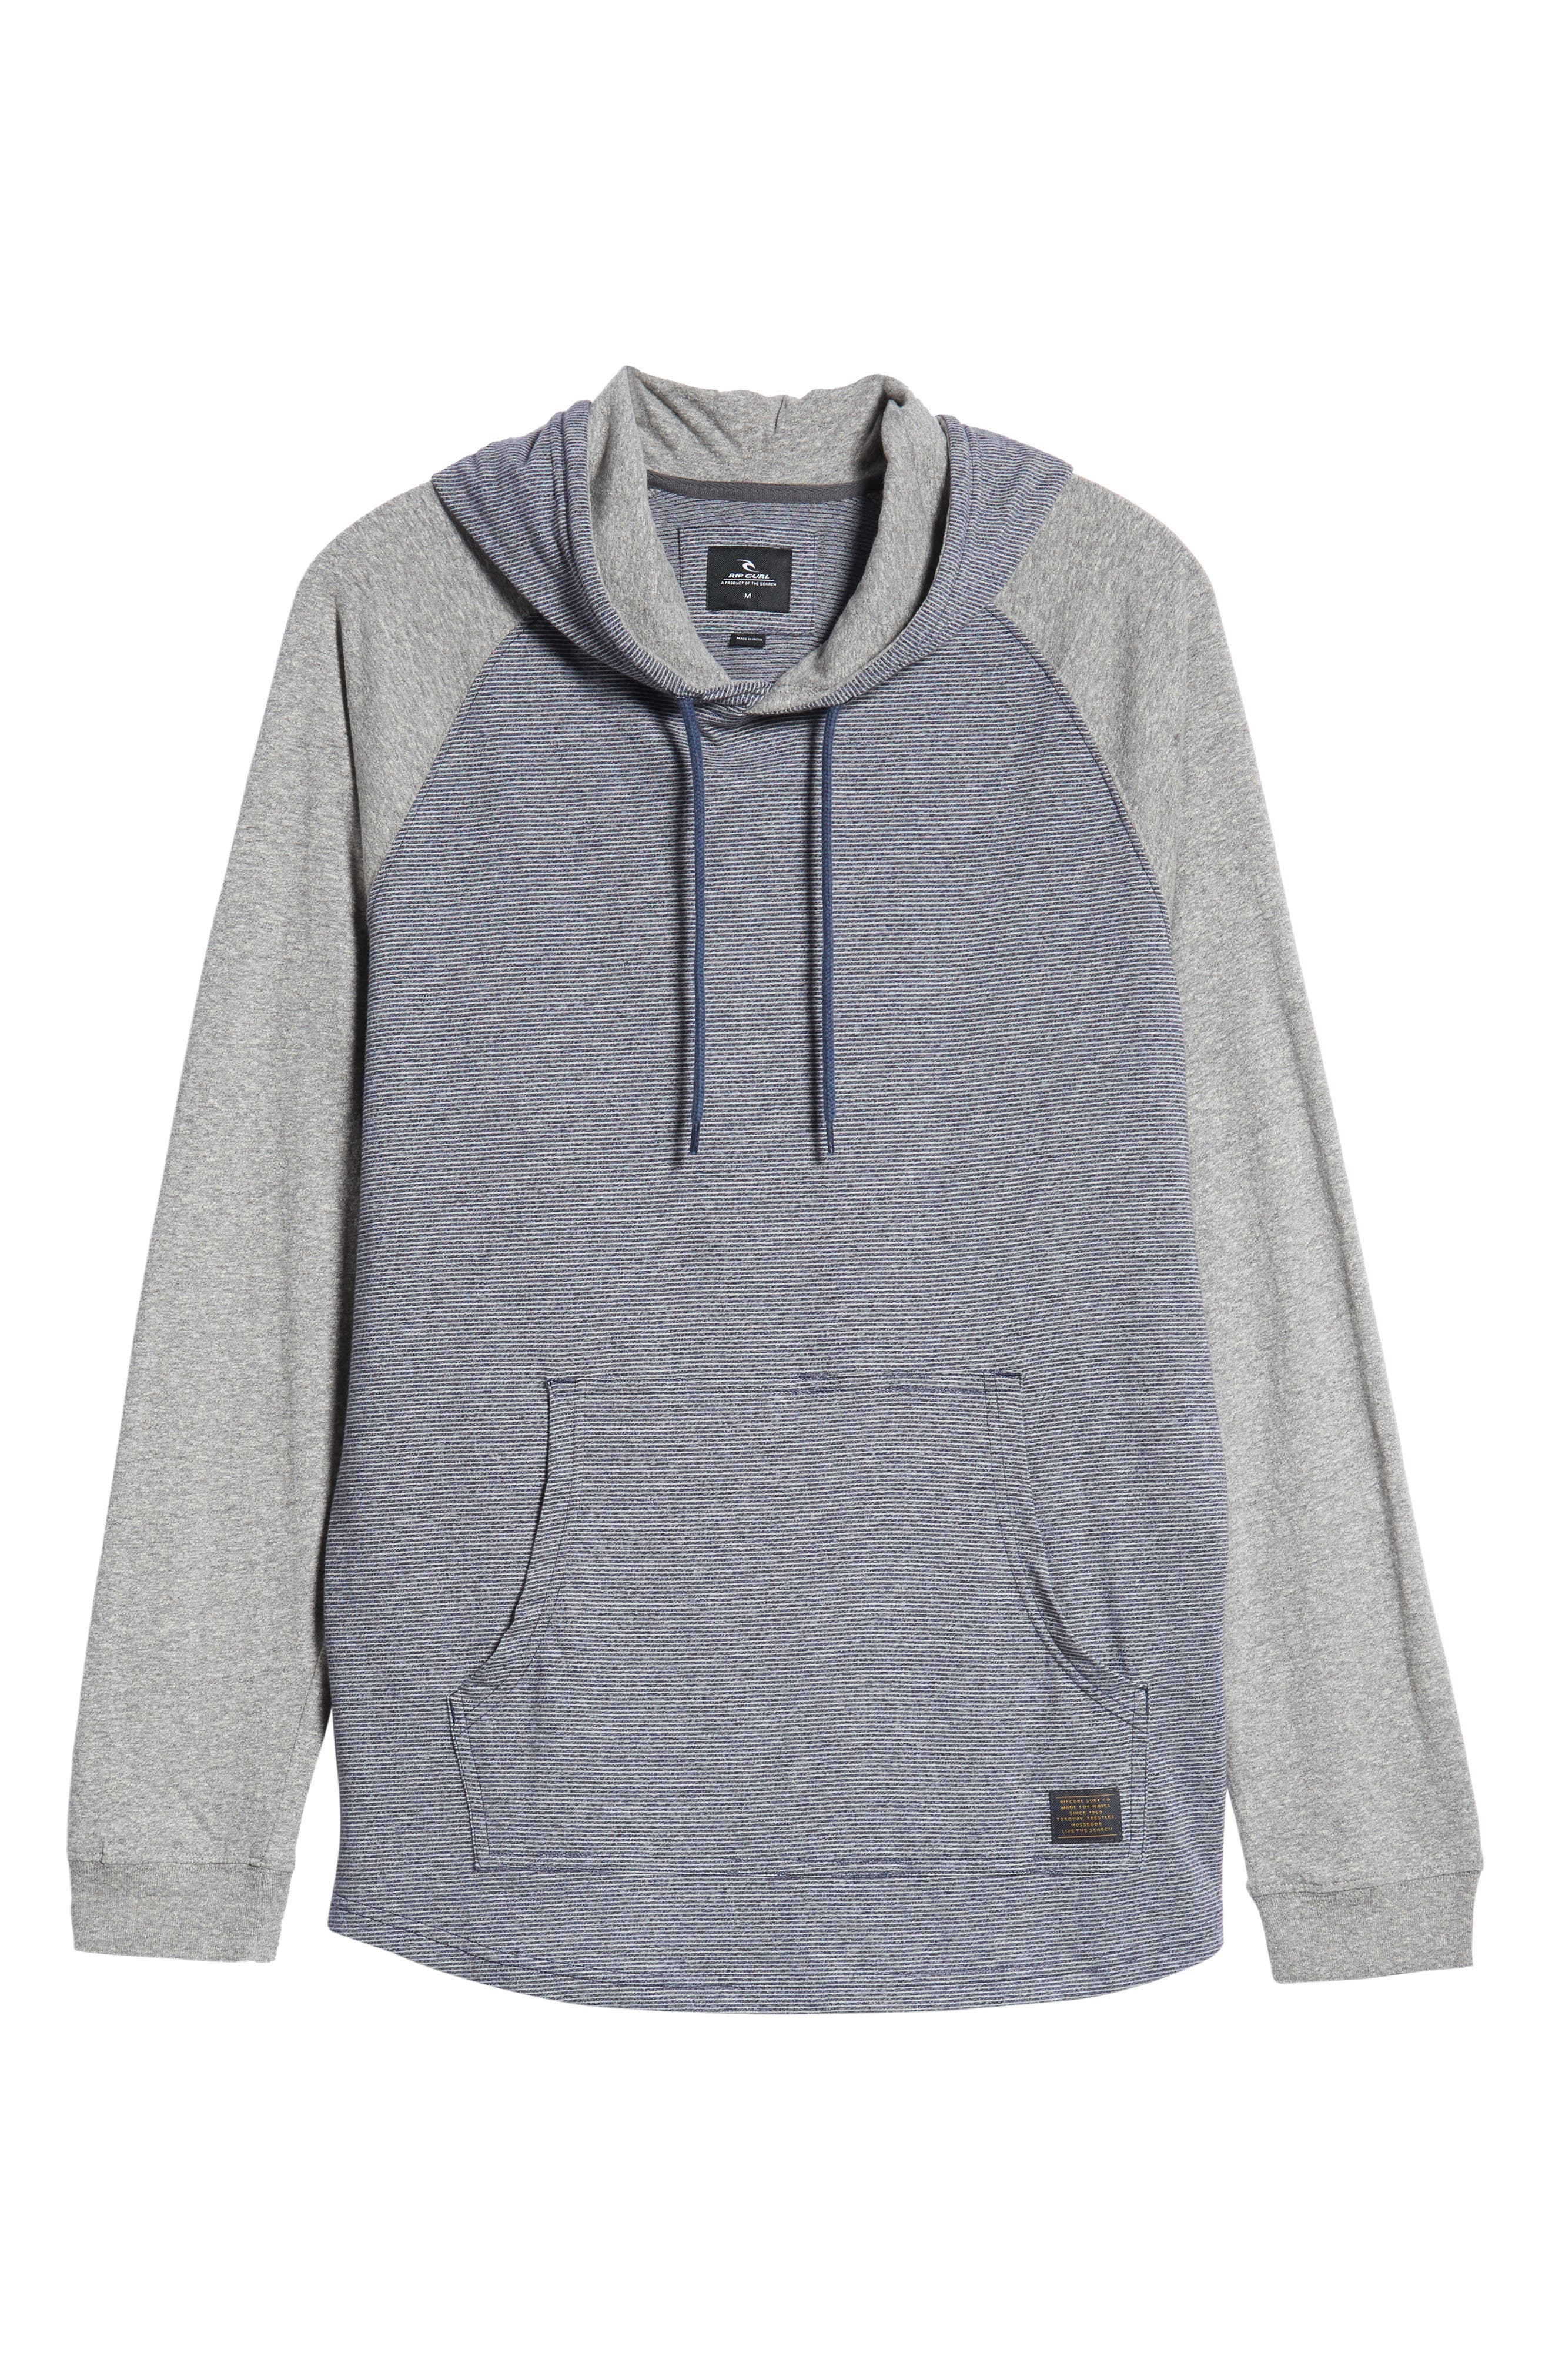 All In Hoodie,                             Alternate thumbnail 6, color,                             410